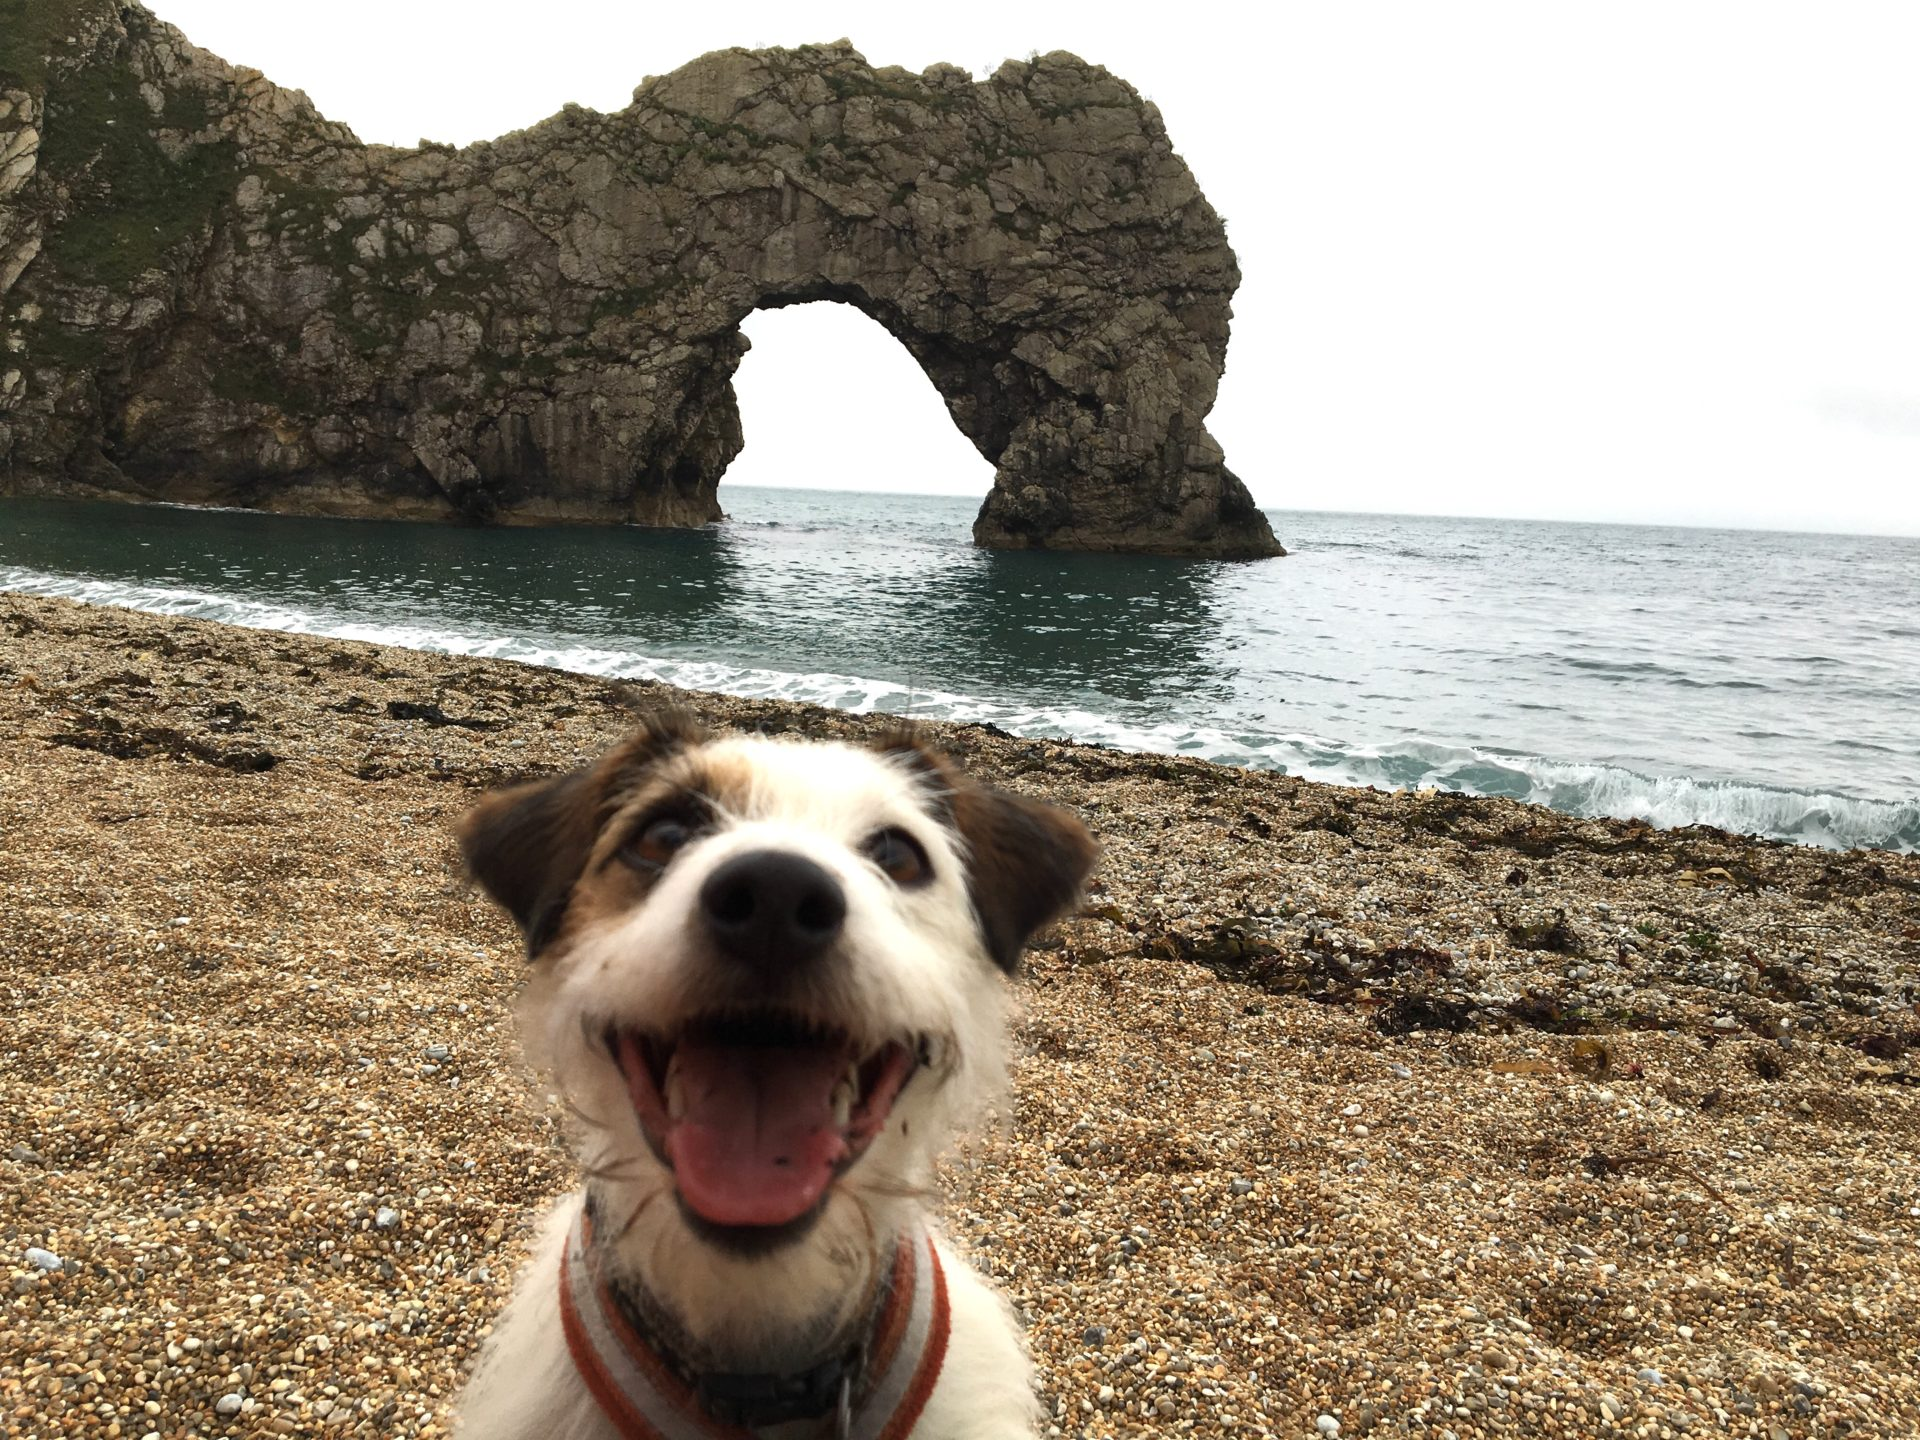 The Jurassic Coast is the perfect location to explore with your canine companion. There are plenty of dog friendly beaches you can use,